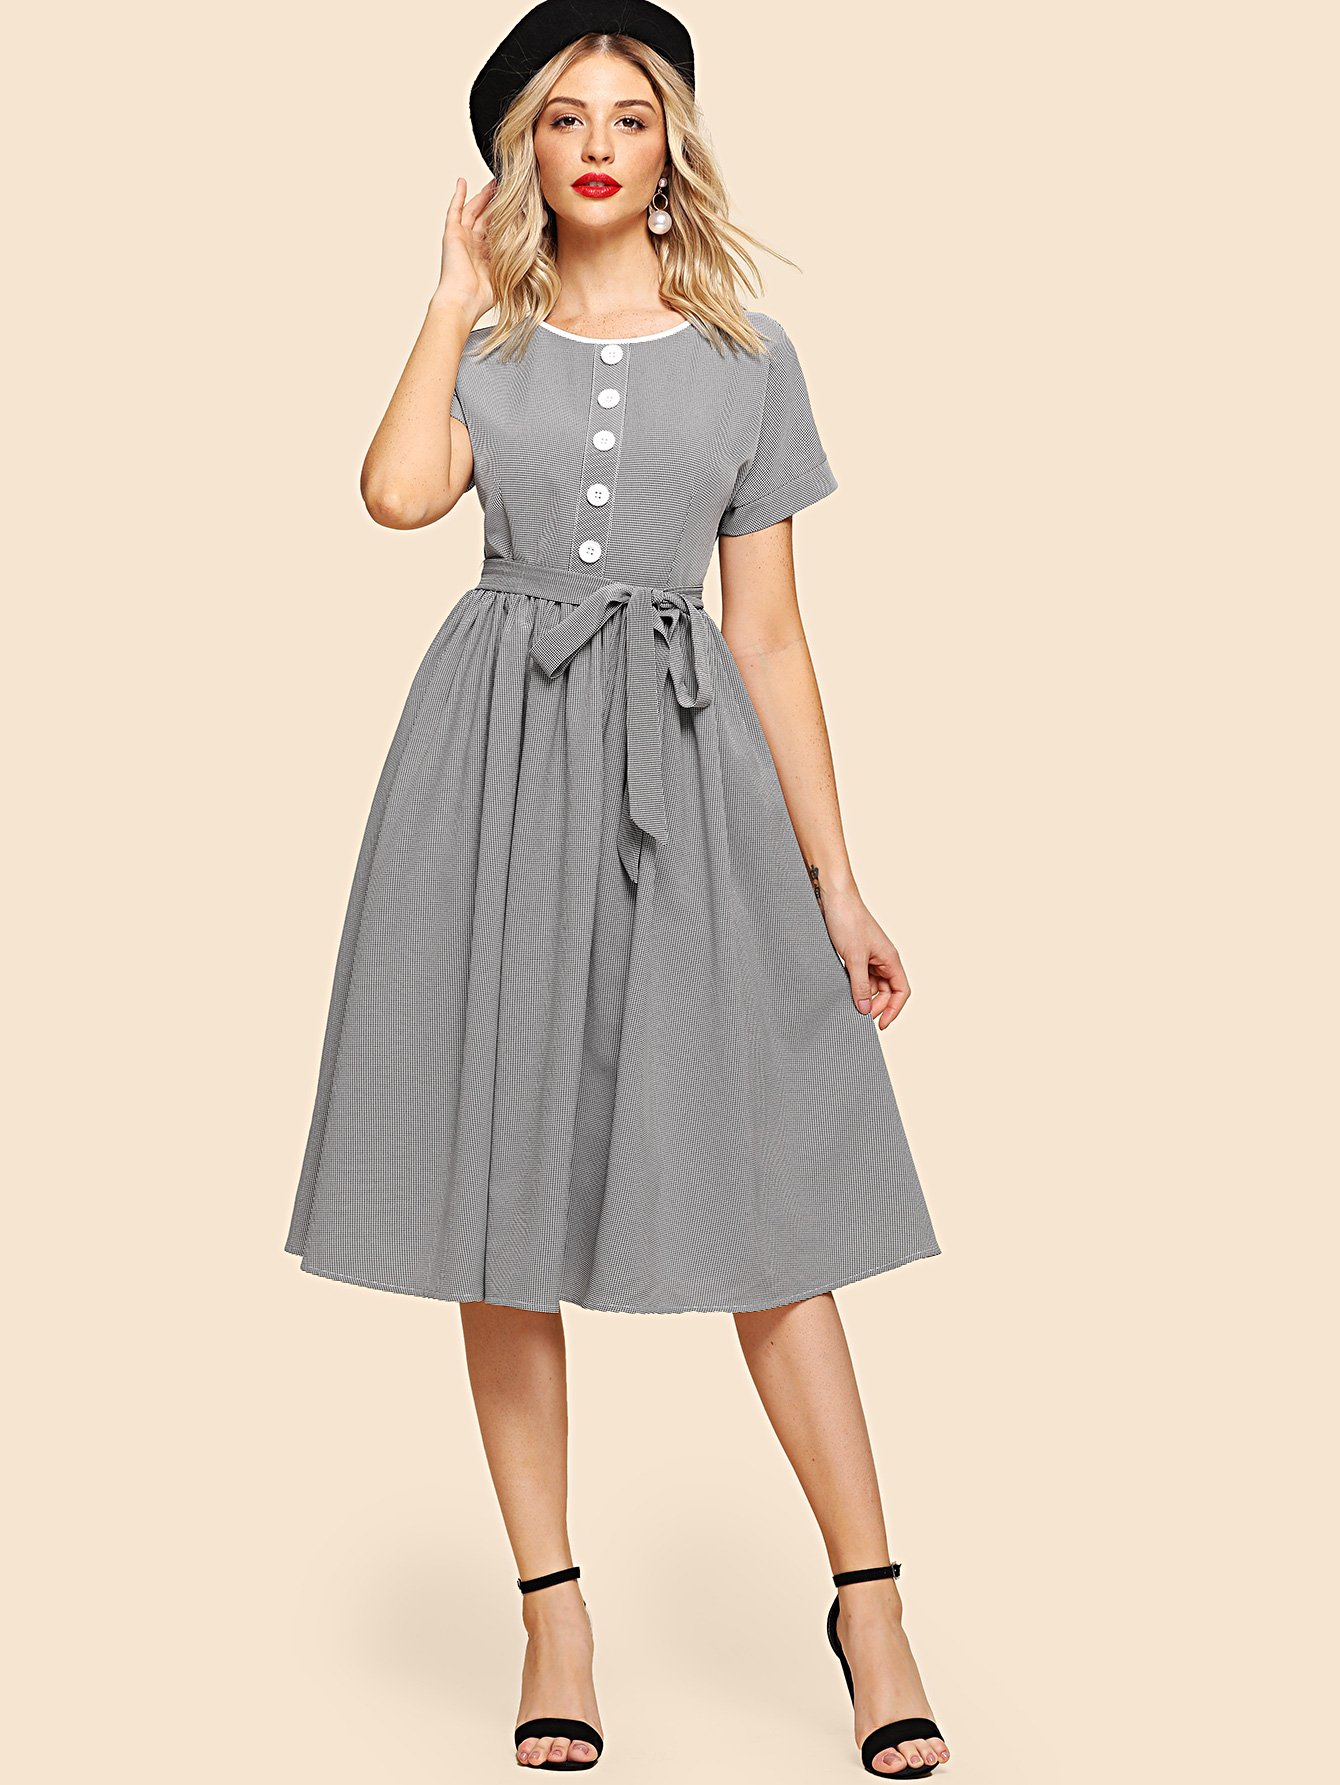 Self Belted Button Up Flare Dress plus size button up belted pocket shirt dress